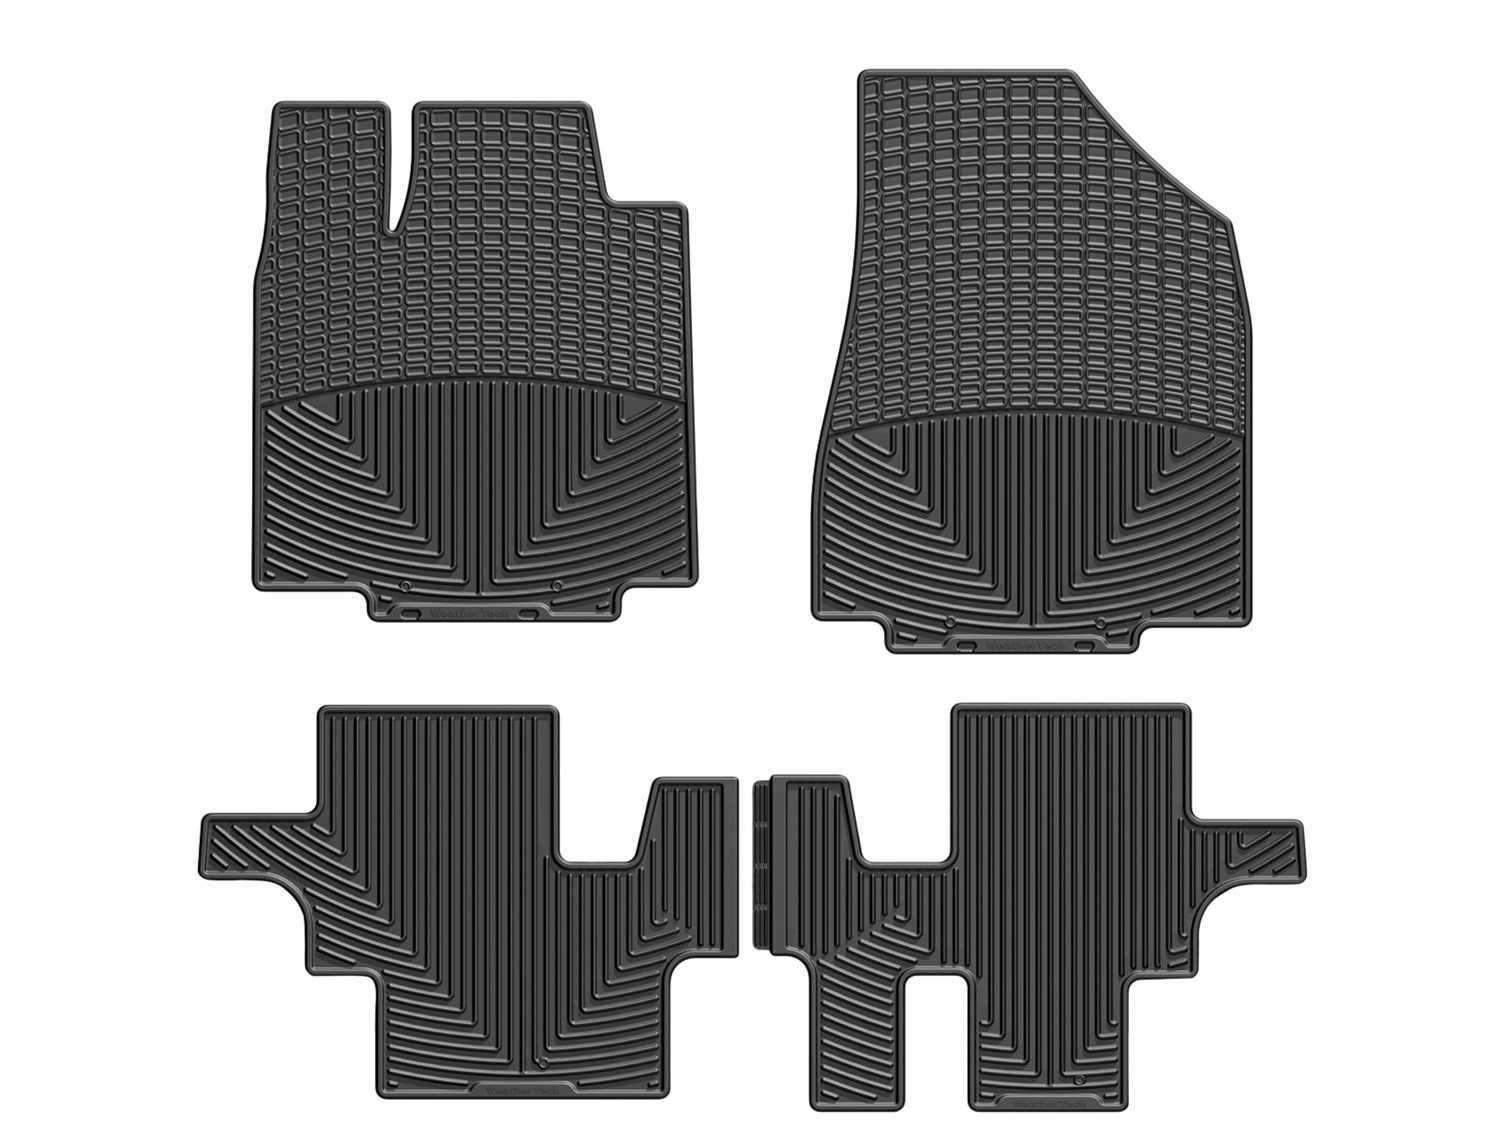 WTFB097256 WeatherTech All Weather Floor Mats